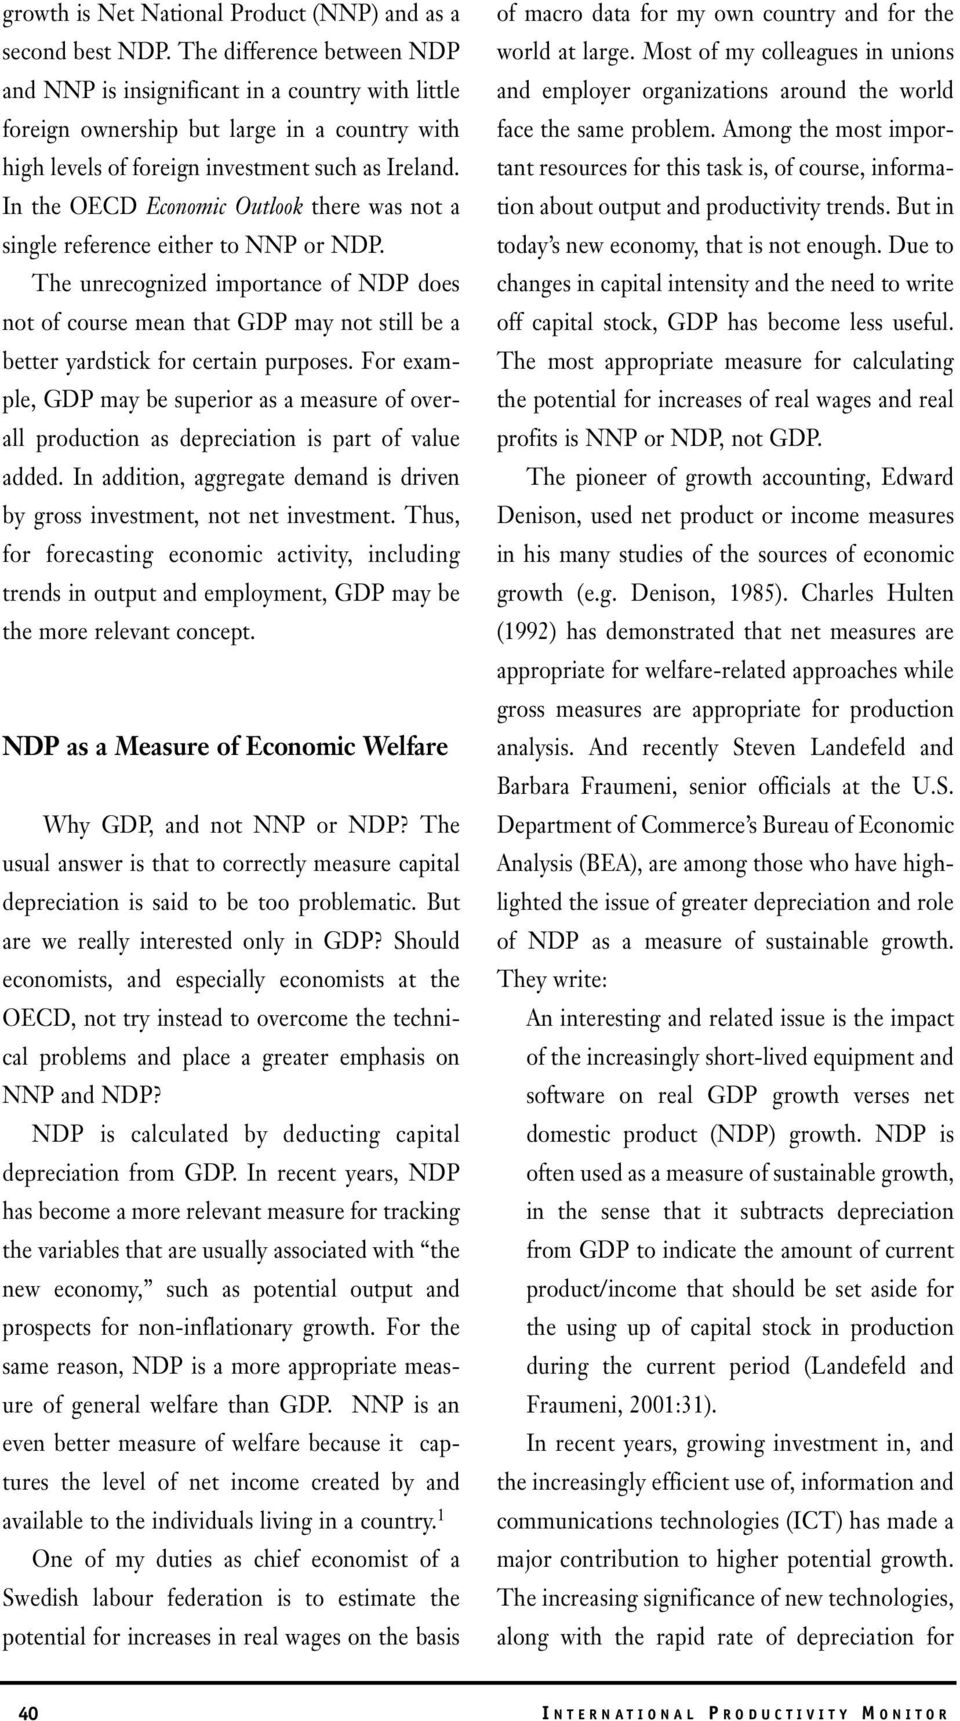 In the OECD Economic Outlook there was not a single reference either to NNP or NDP.